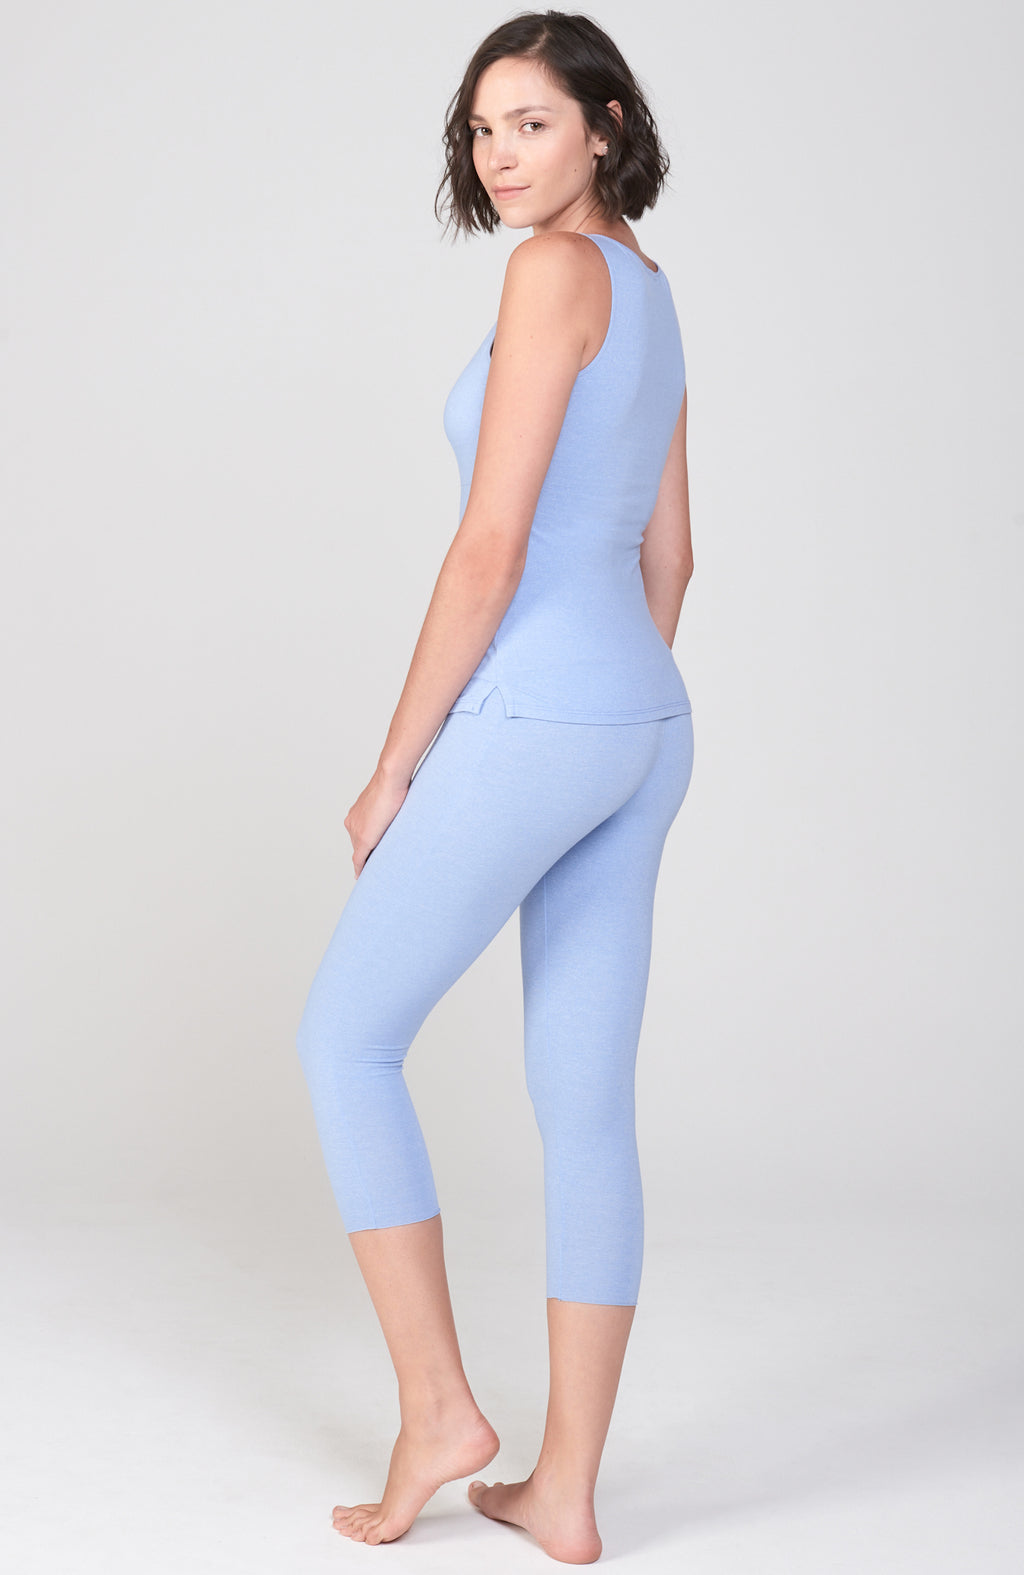 Asana Tank in Blue Moon